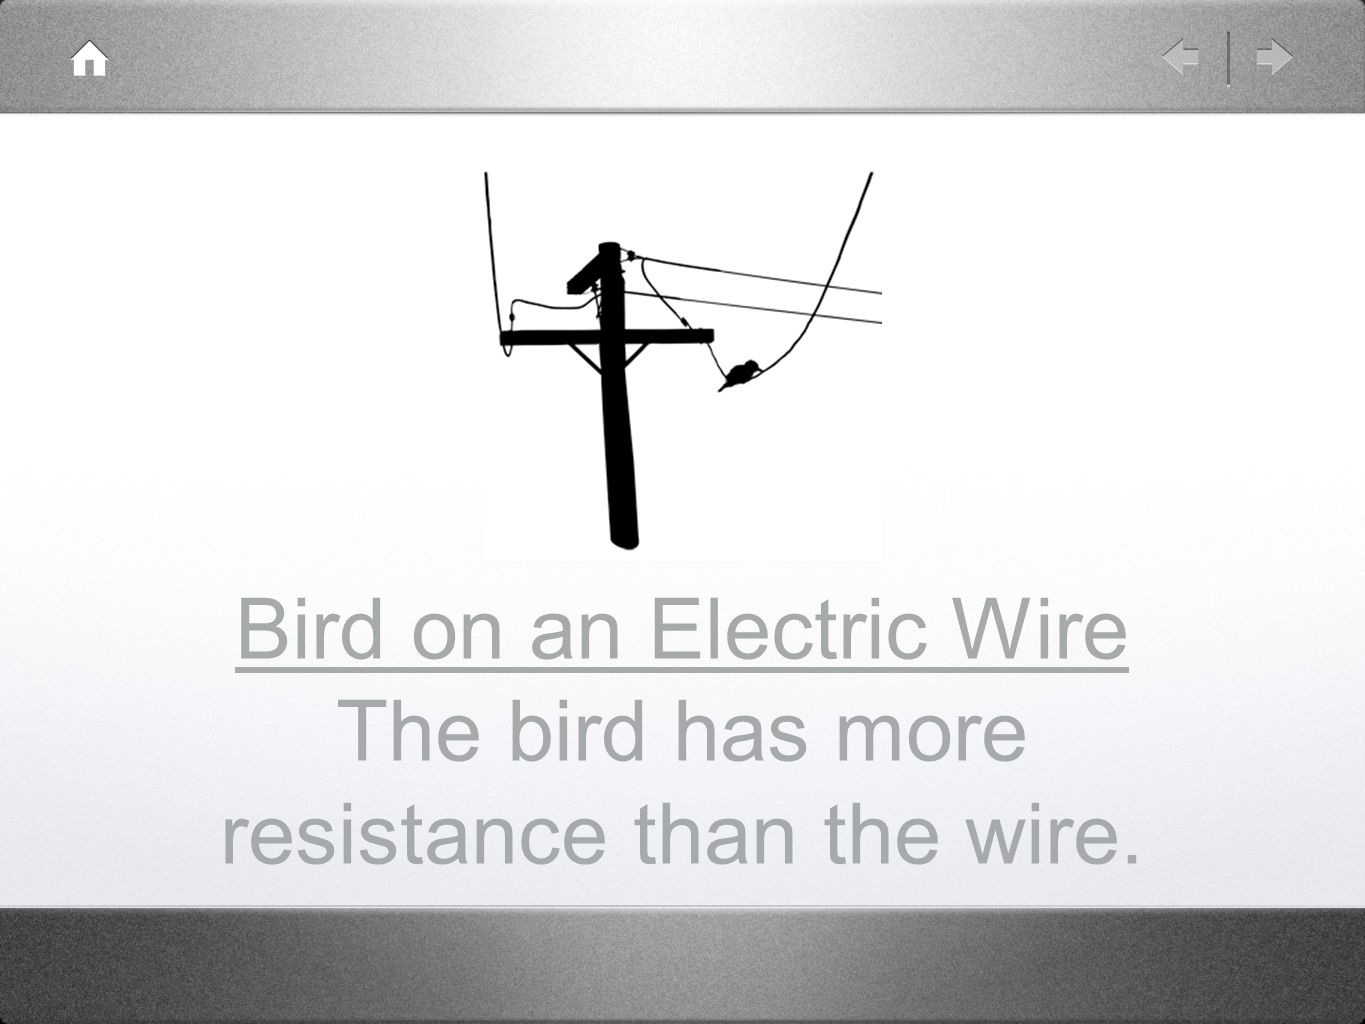 Bird on an Electric Wire The bird has more resistance than the wire.